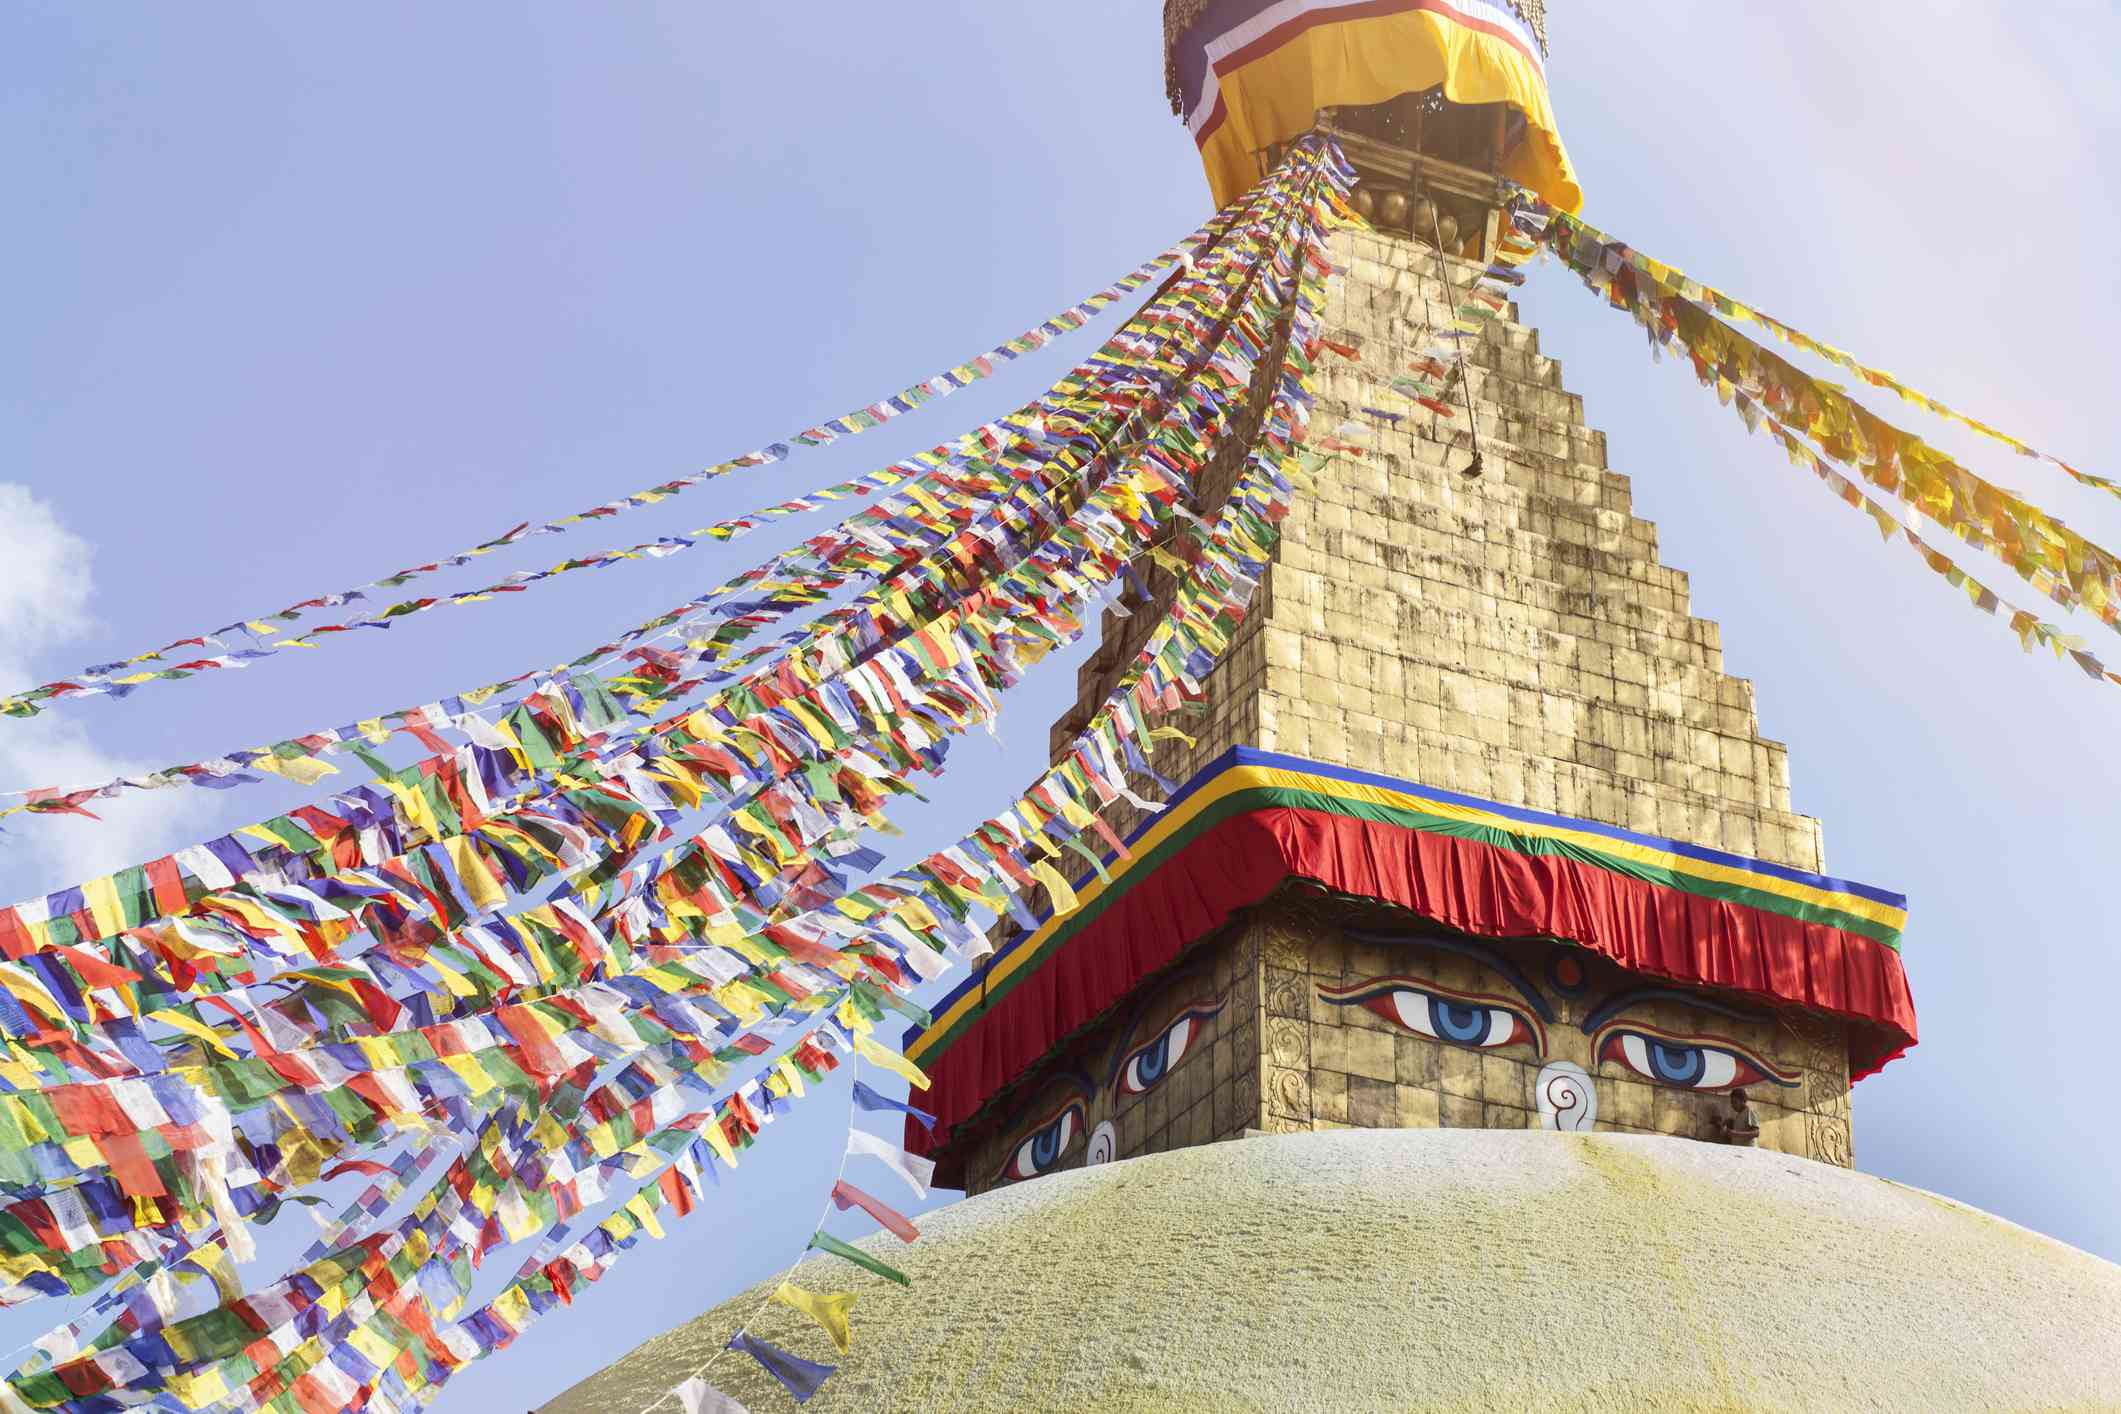 golden Buddhist stupa strung with colorful prayer flags